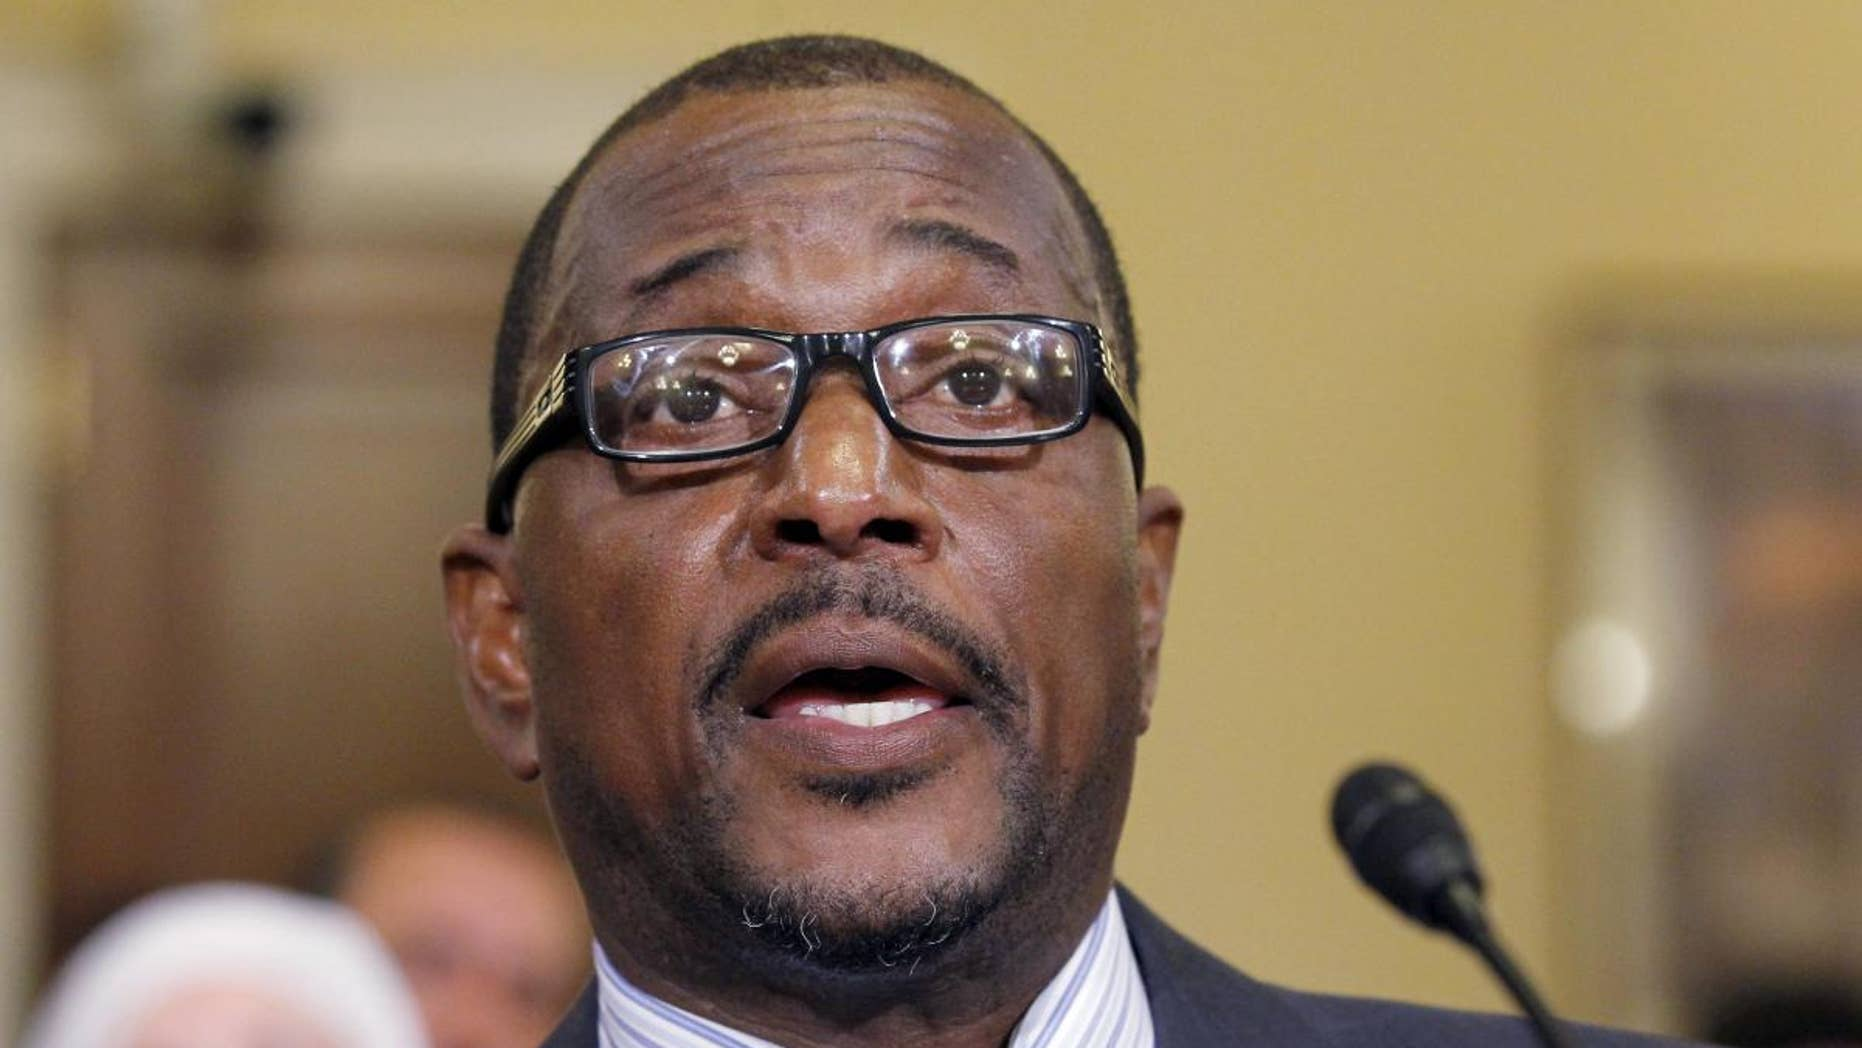 """Melvin Bledsoe, testifies during a hearing of the House Homeland Security Committee, on """"the extent of the radicalization"""" of American Muslims, on Capitol Hill in Washington, Thursday, March 10, 2011 (AP Photo/Alex Brandon)"""